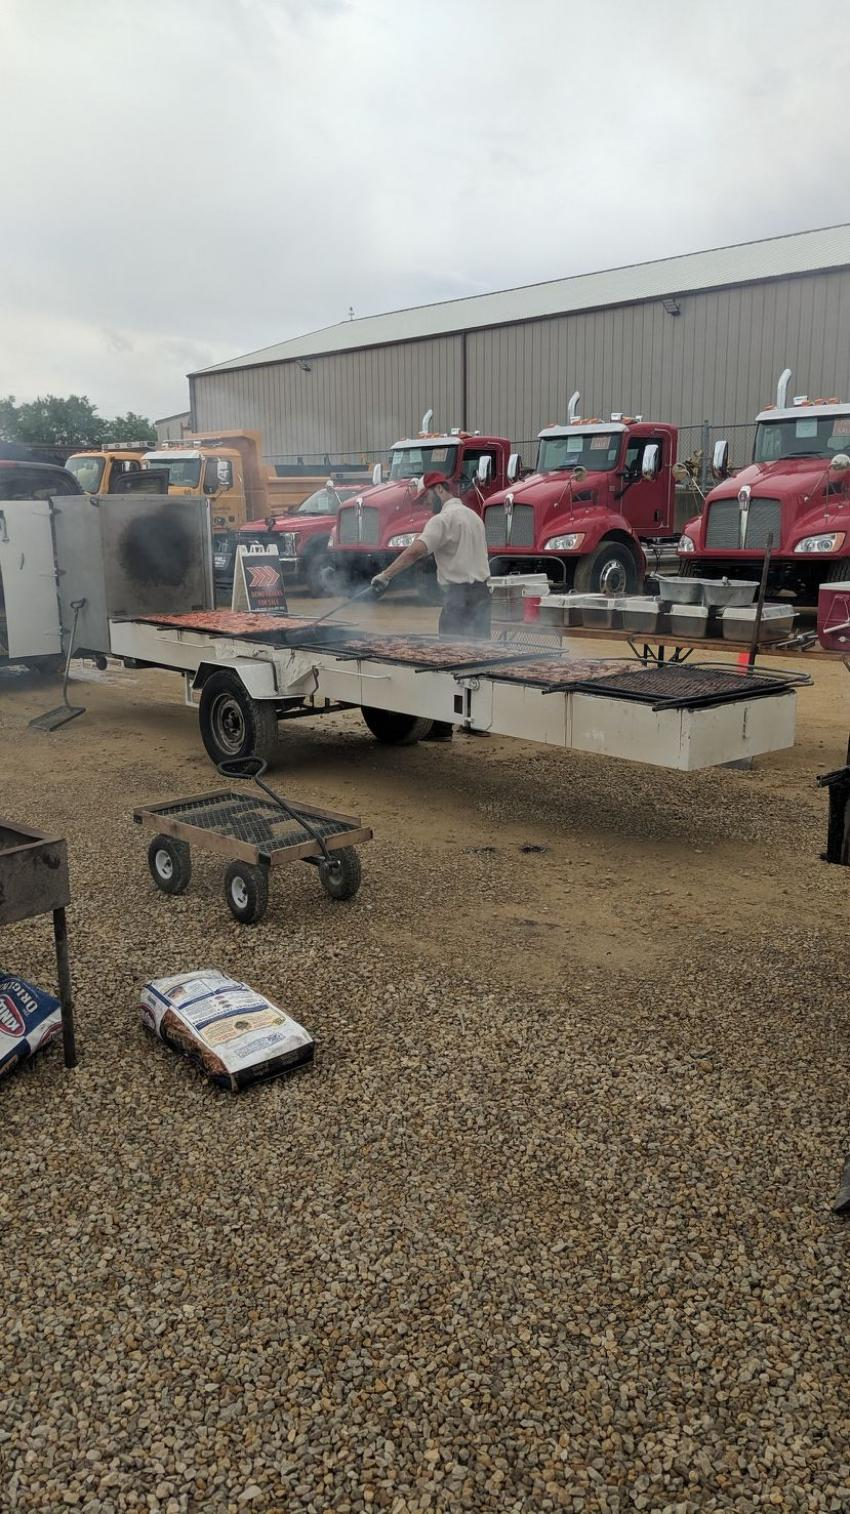 Fay's Pork Chop Bar-B-Que from Waterman, Ill., catered the event.